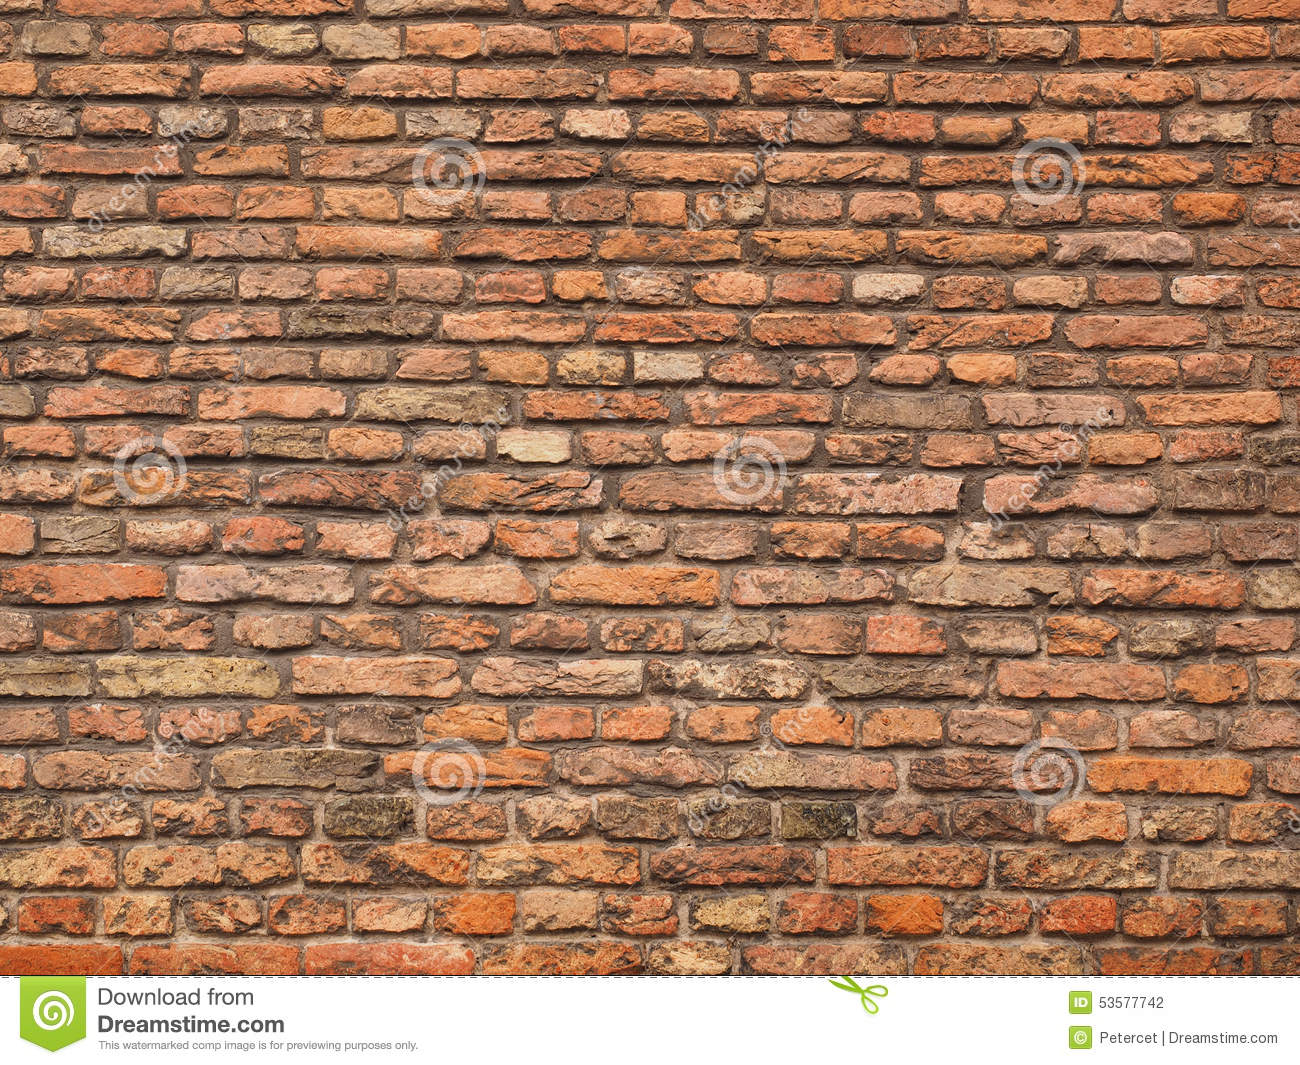 Medieval Rough Brick Wall Of Earth And Terracotta Colored Bricks.